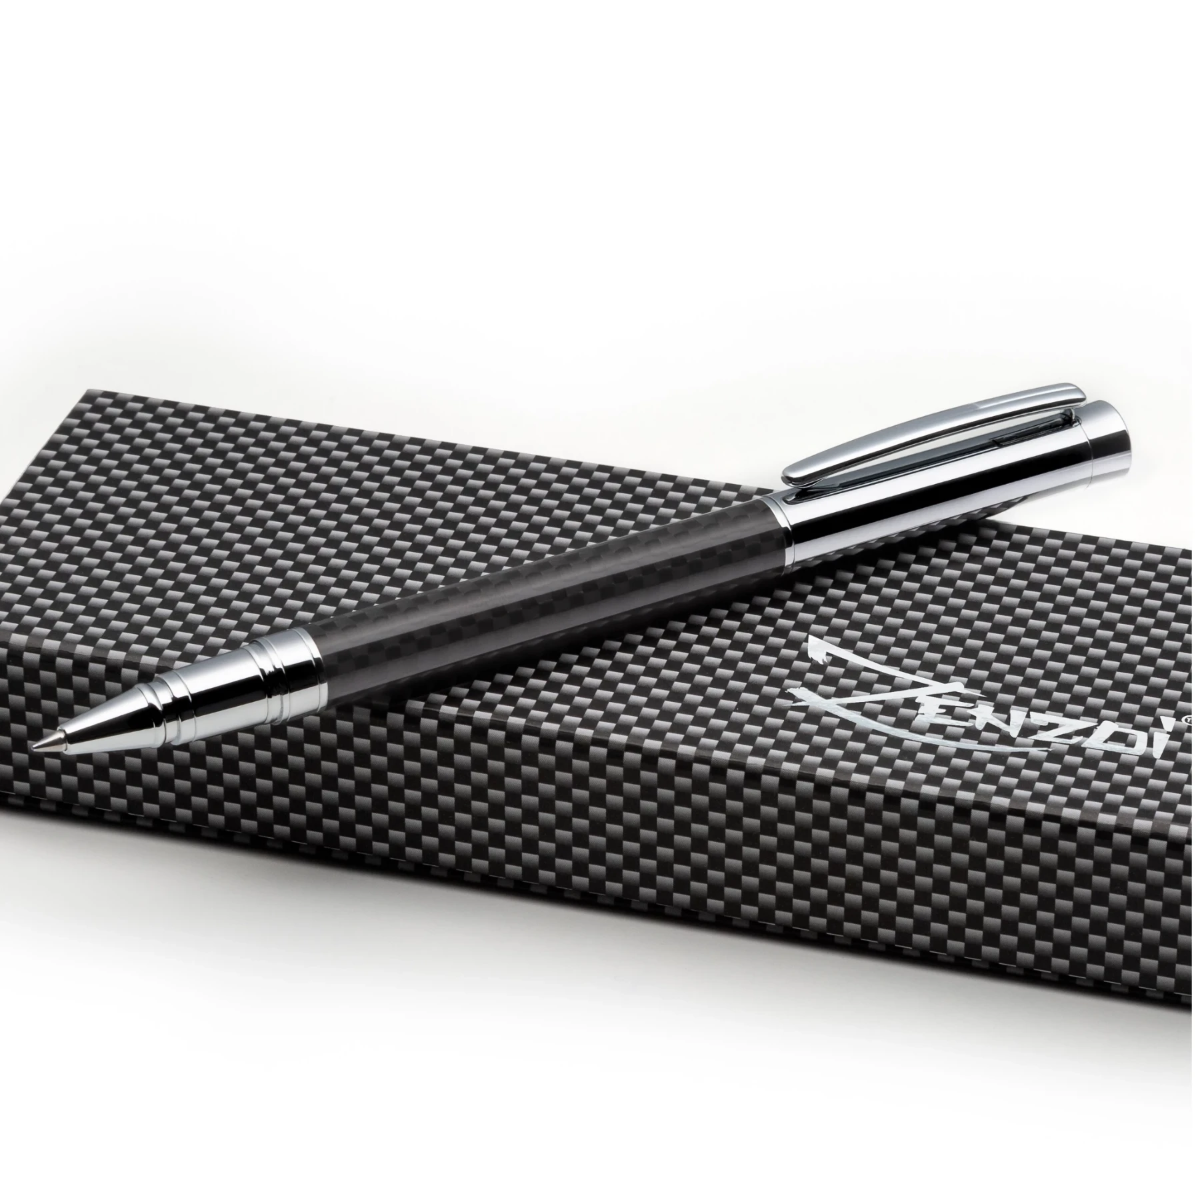 Carbon Fiber Rollerball Pen Set W/ 0.5mm Schneider Ink Refill & Gift Pen Set